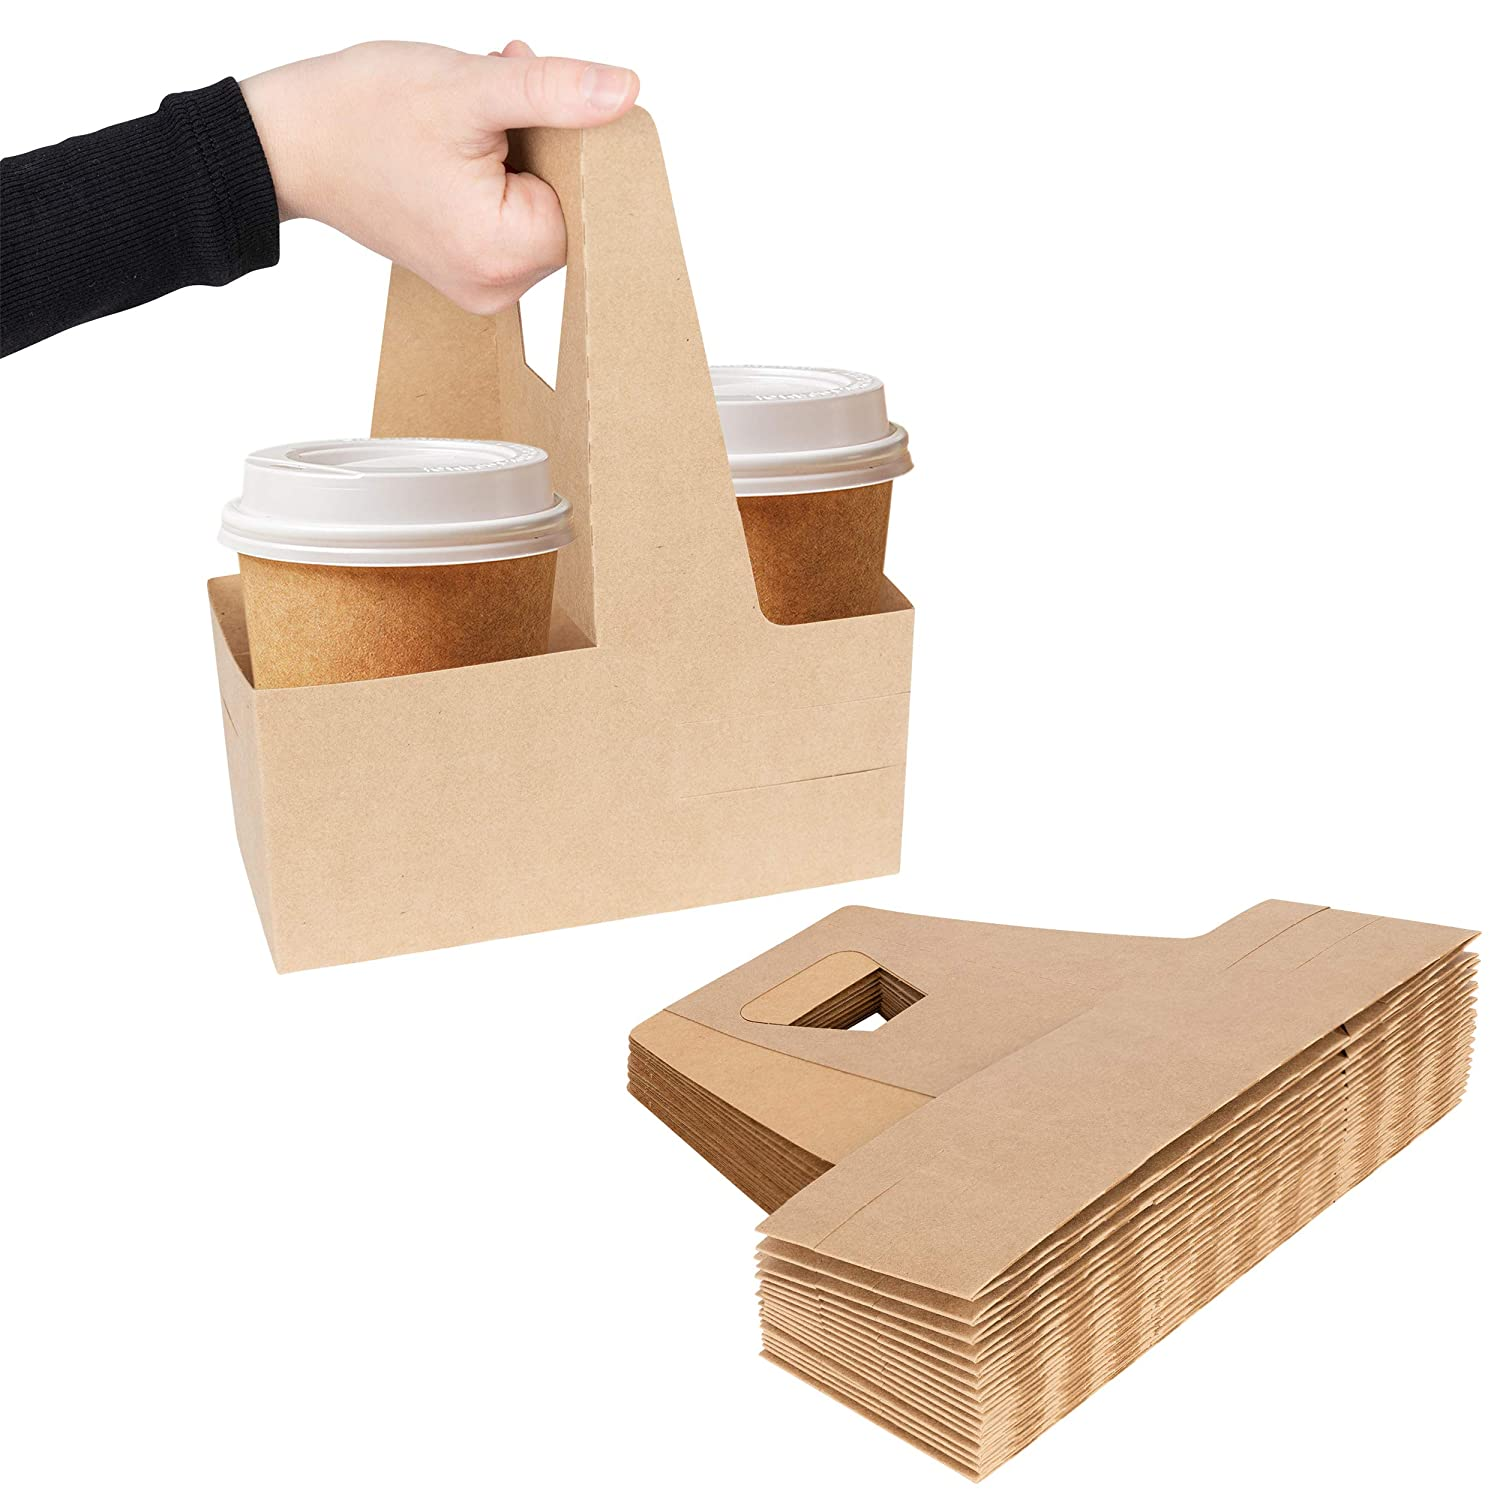 2 Cup Disposable Drink Carrier with Handle (25 Count) - Kraft Paperboard Cup Holder - Disposable Cup Holder for Hot or Cold Drinks - To Go Coffee Cup Holder for Food Delivery Service, Uber Eats